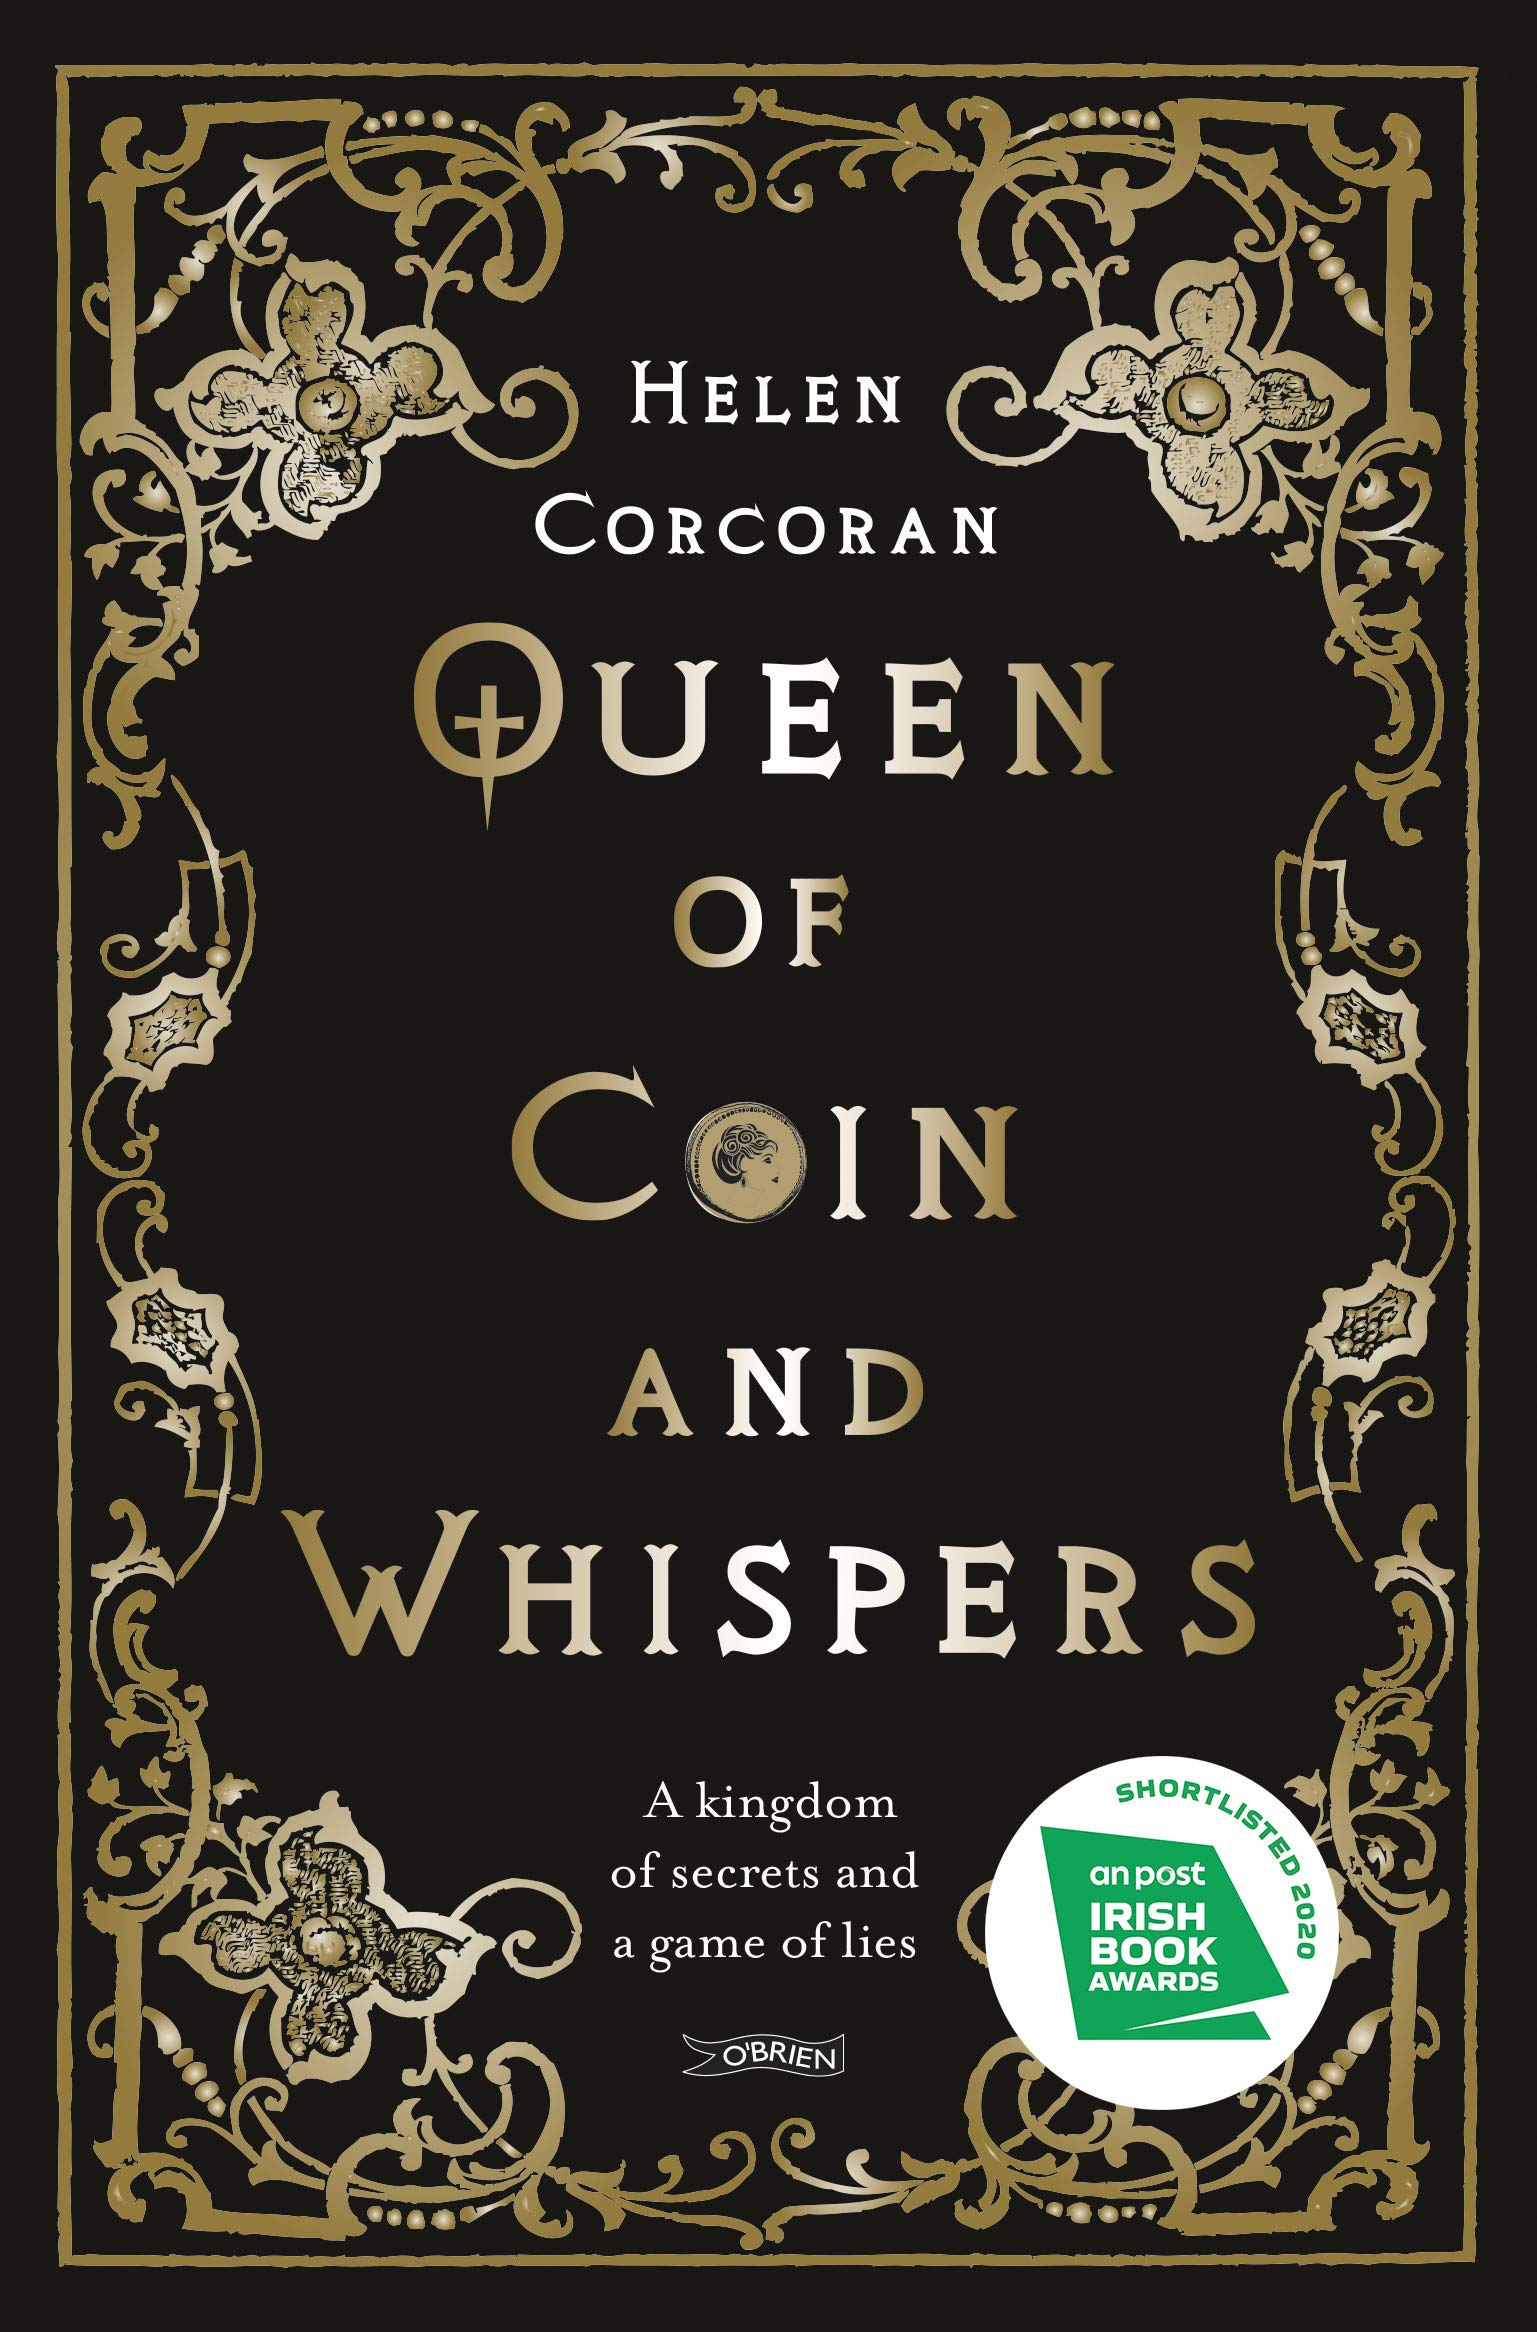 Amazon.com: Queen of Coin and Whispers: A kingdom of secrets and a game of  lies: 9781788491181: Corcoran, Helen: Books